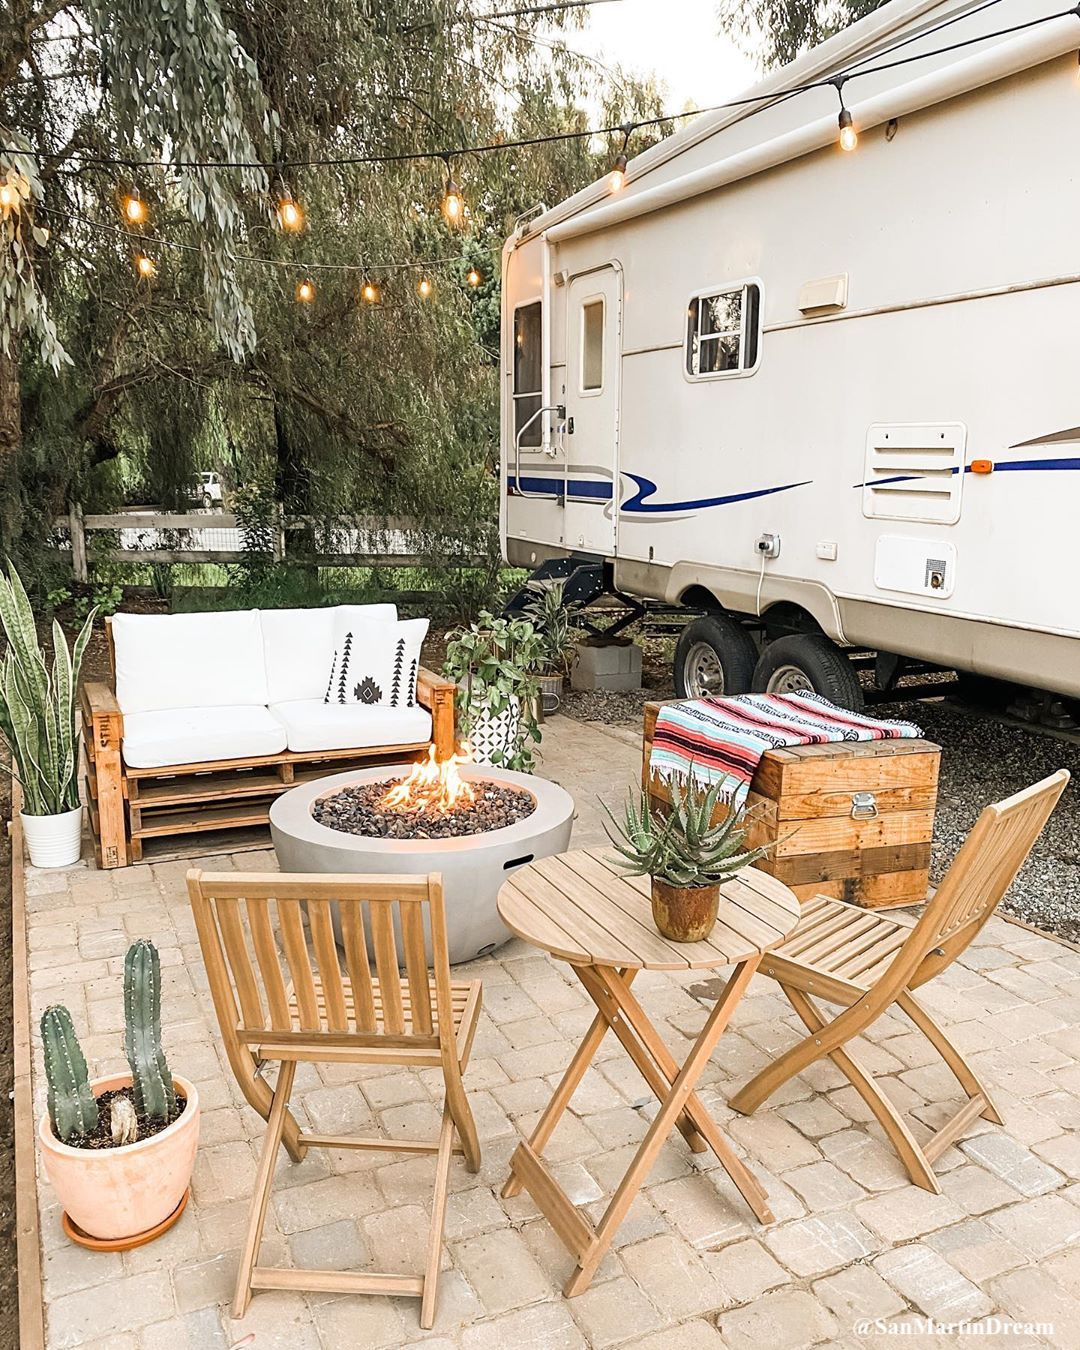 Long-term or seasonal campsite RV patio landscaping idea